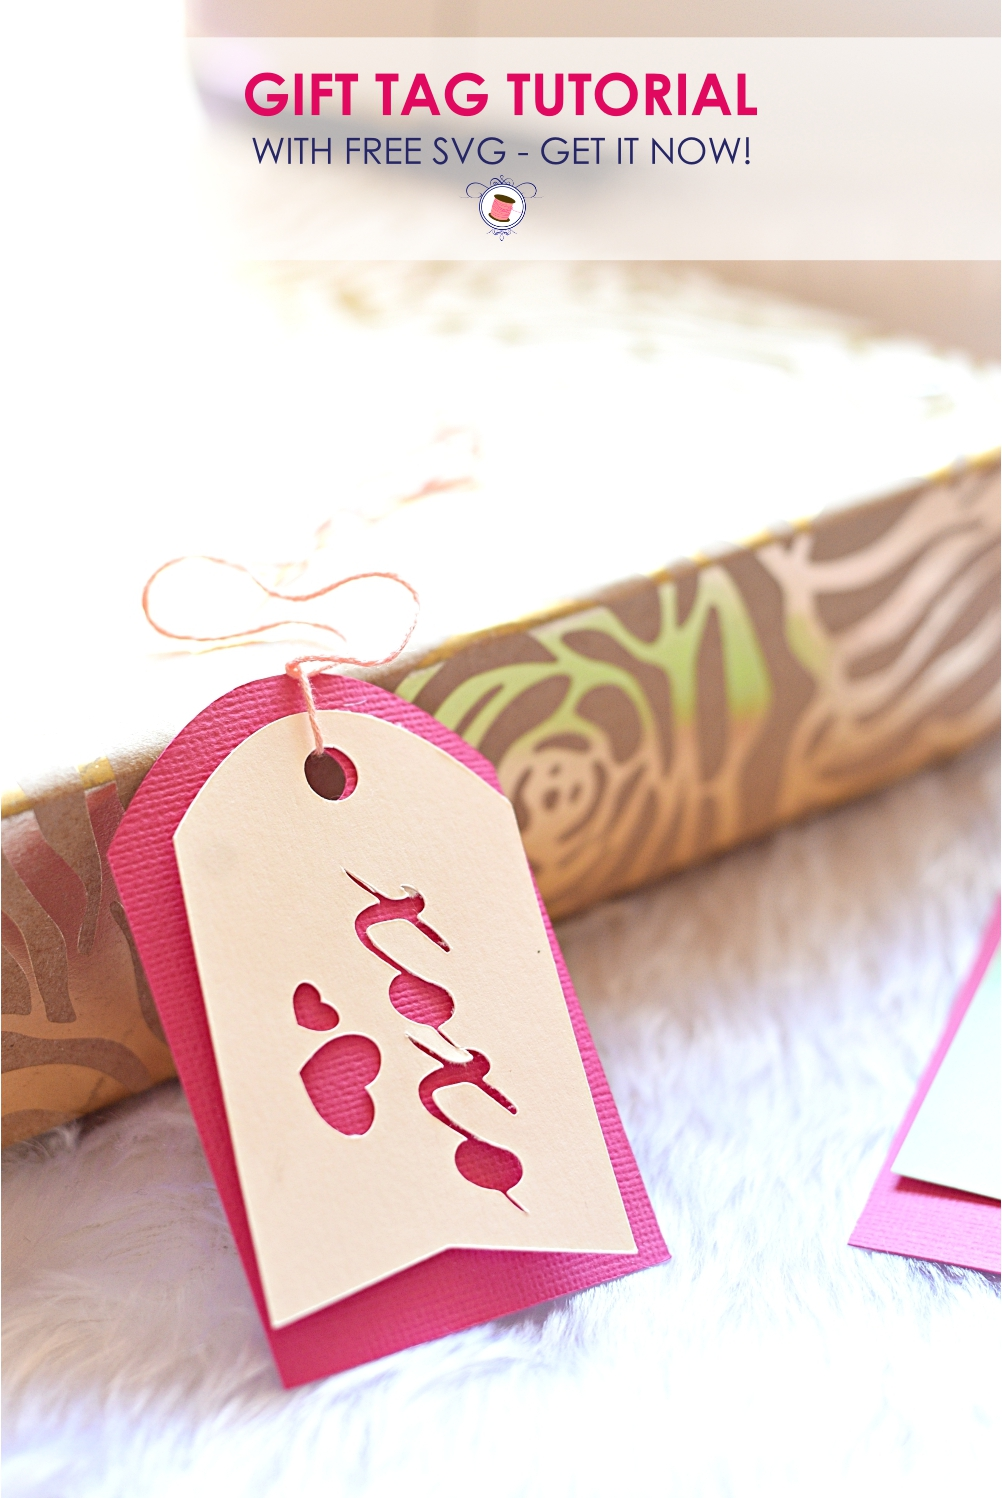 Download Super Cute Free SVG Gift Tags for Cricut - Sew Some Stuff